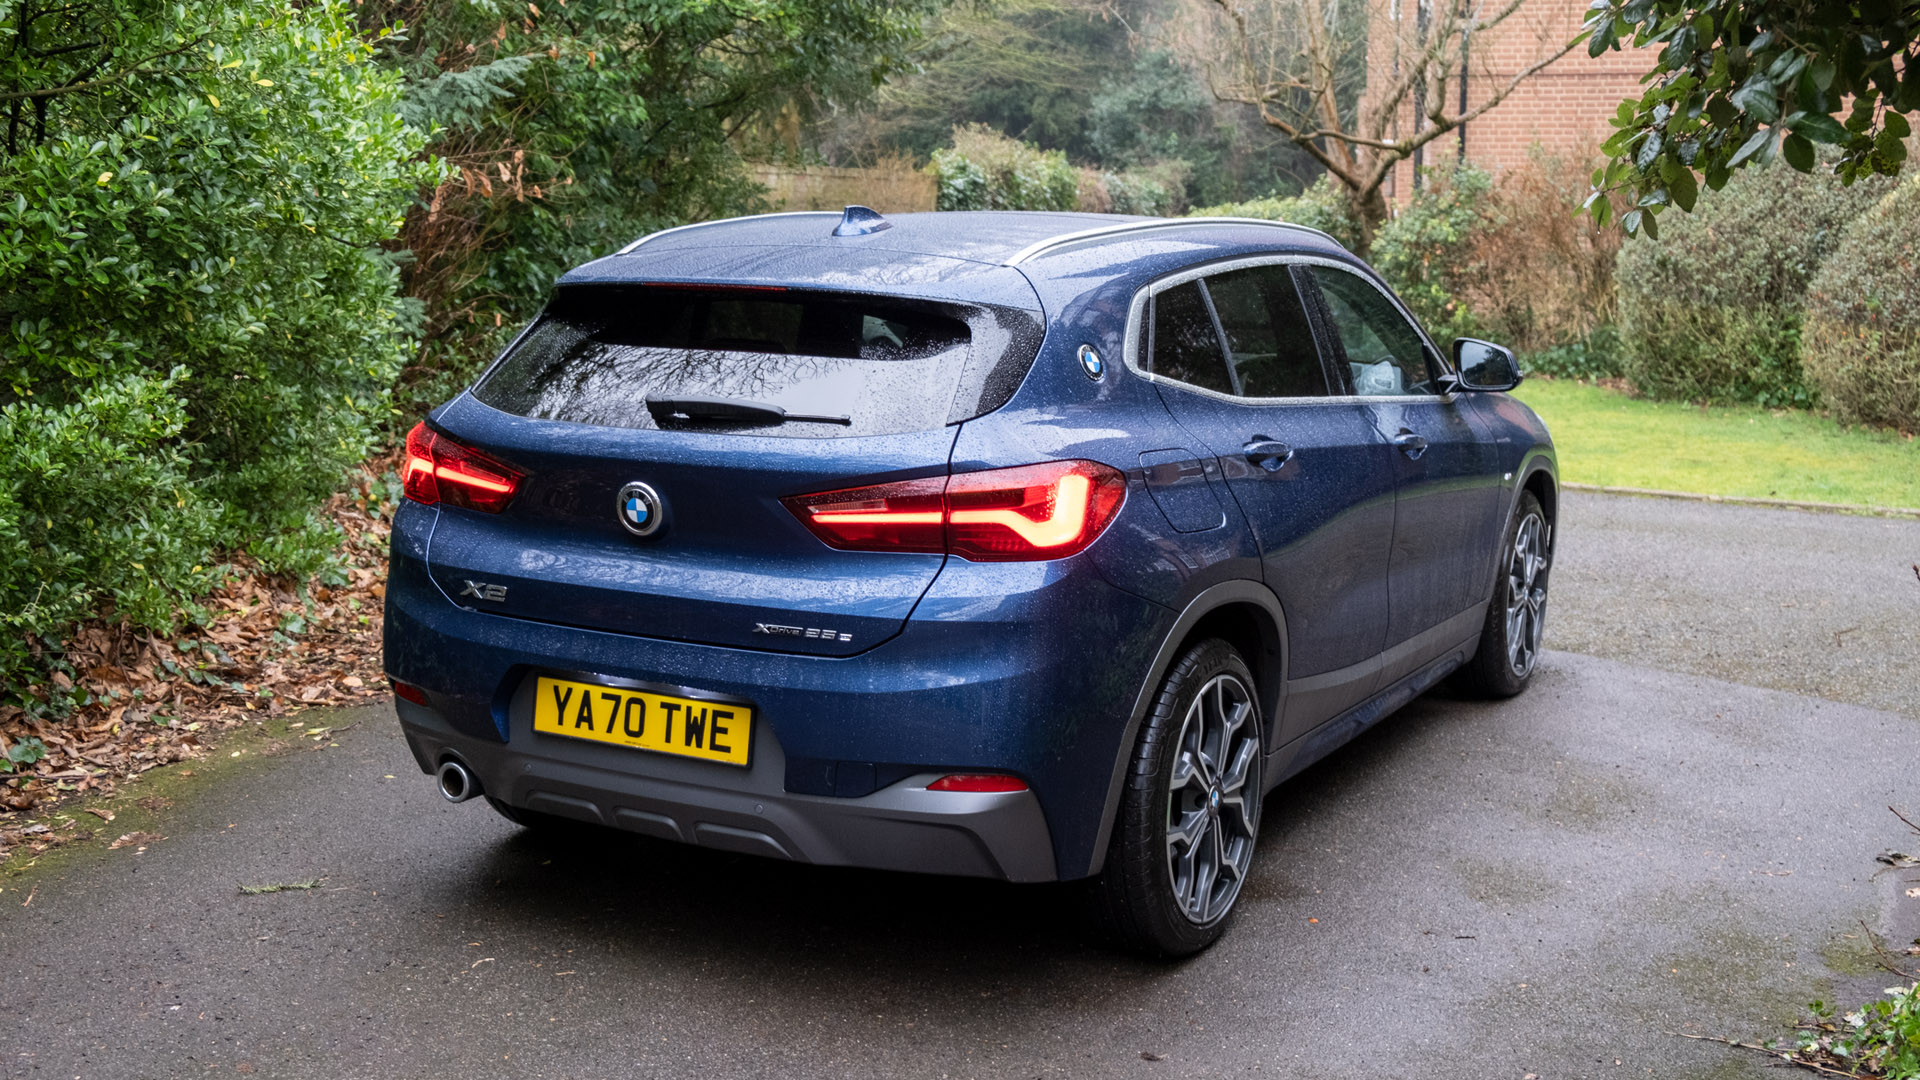 BMW X2 xDrive25e rear design